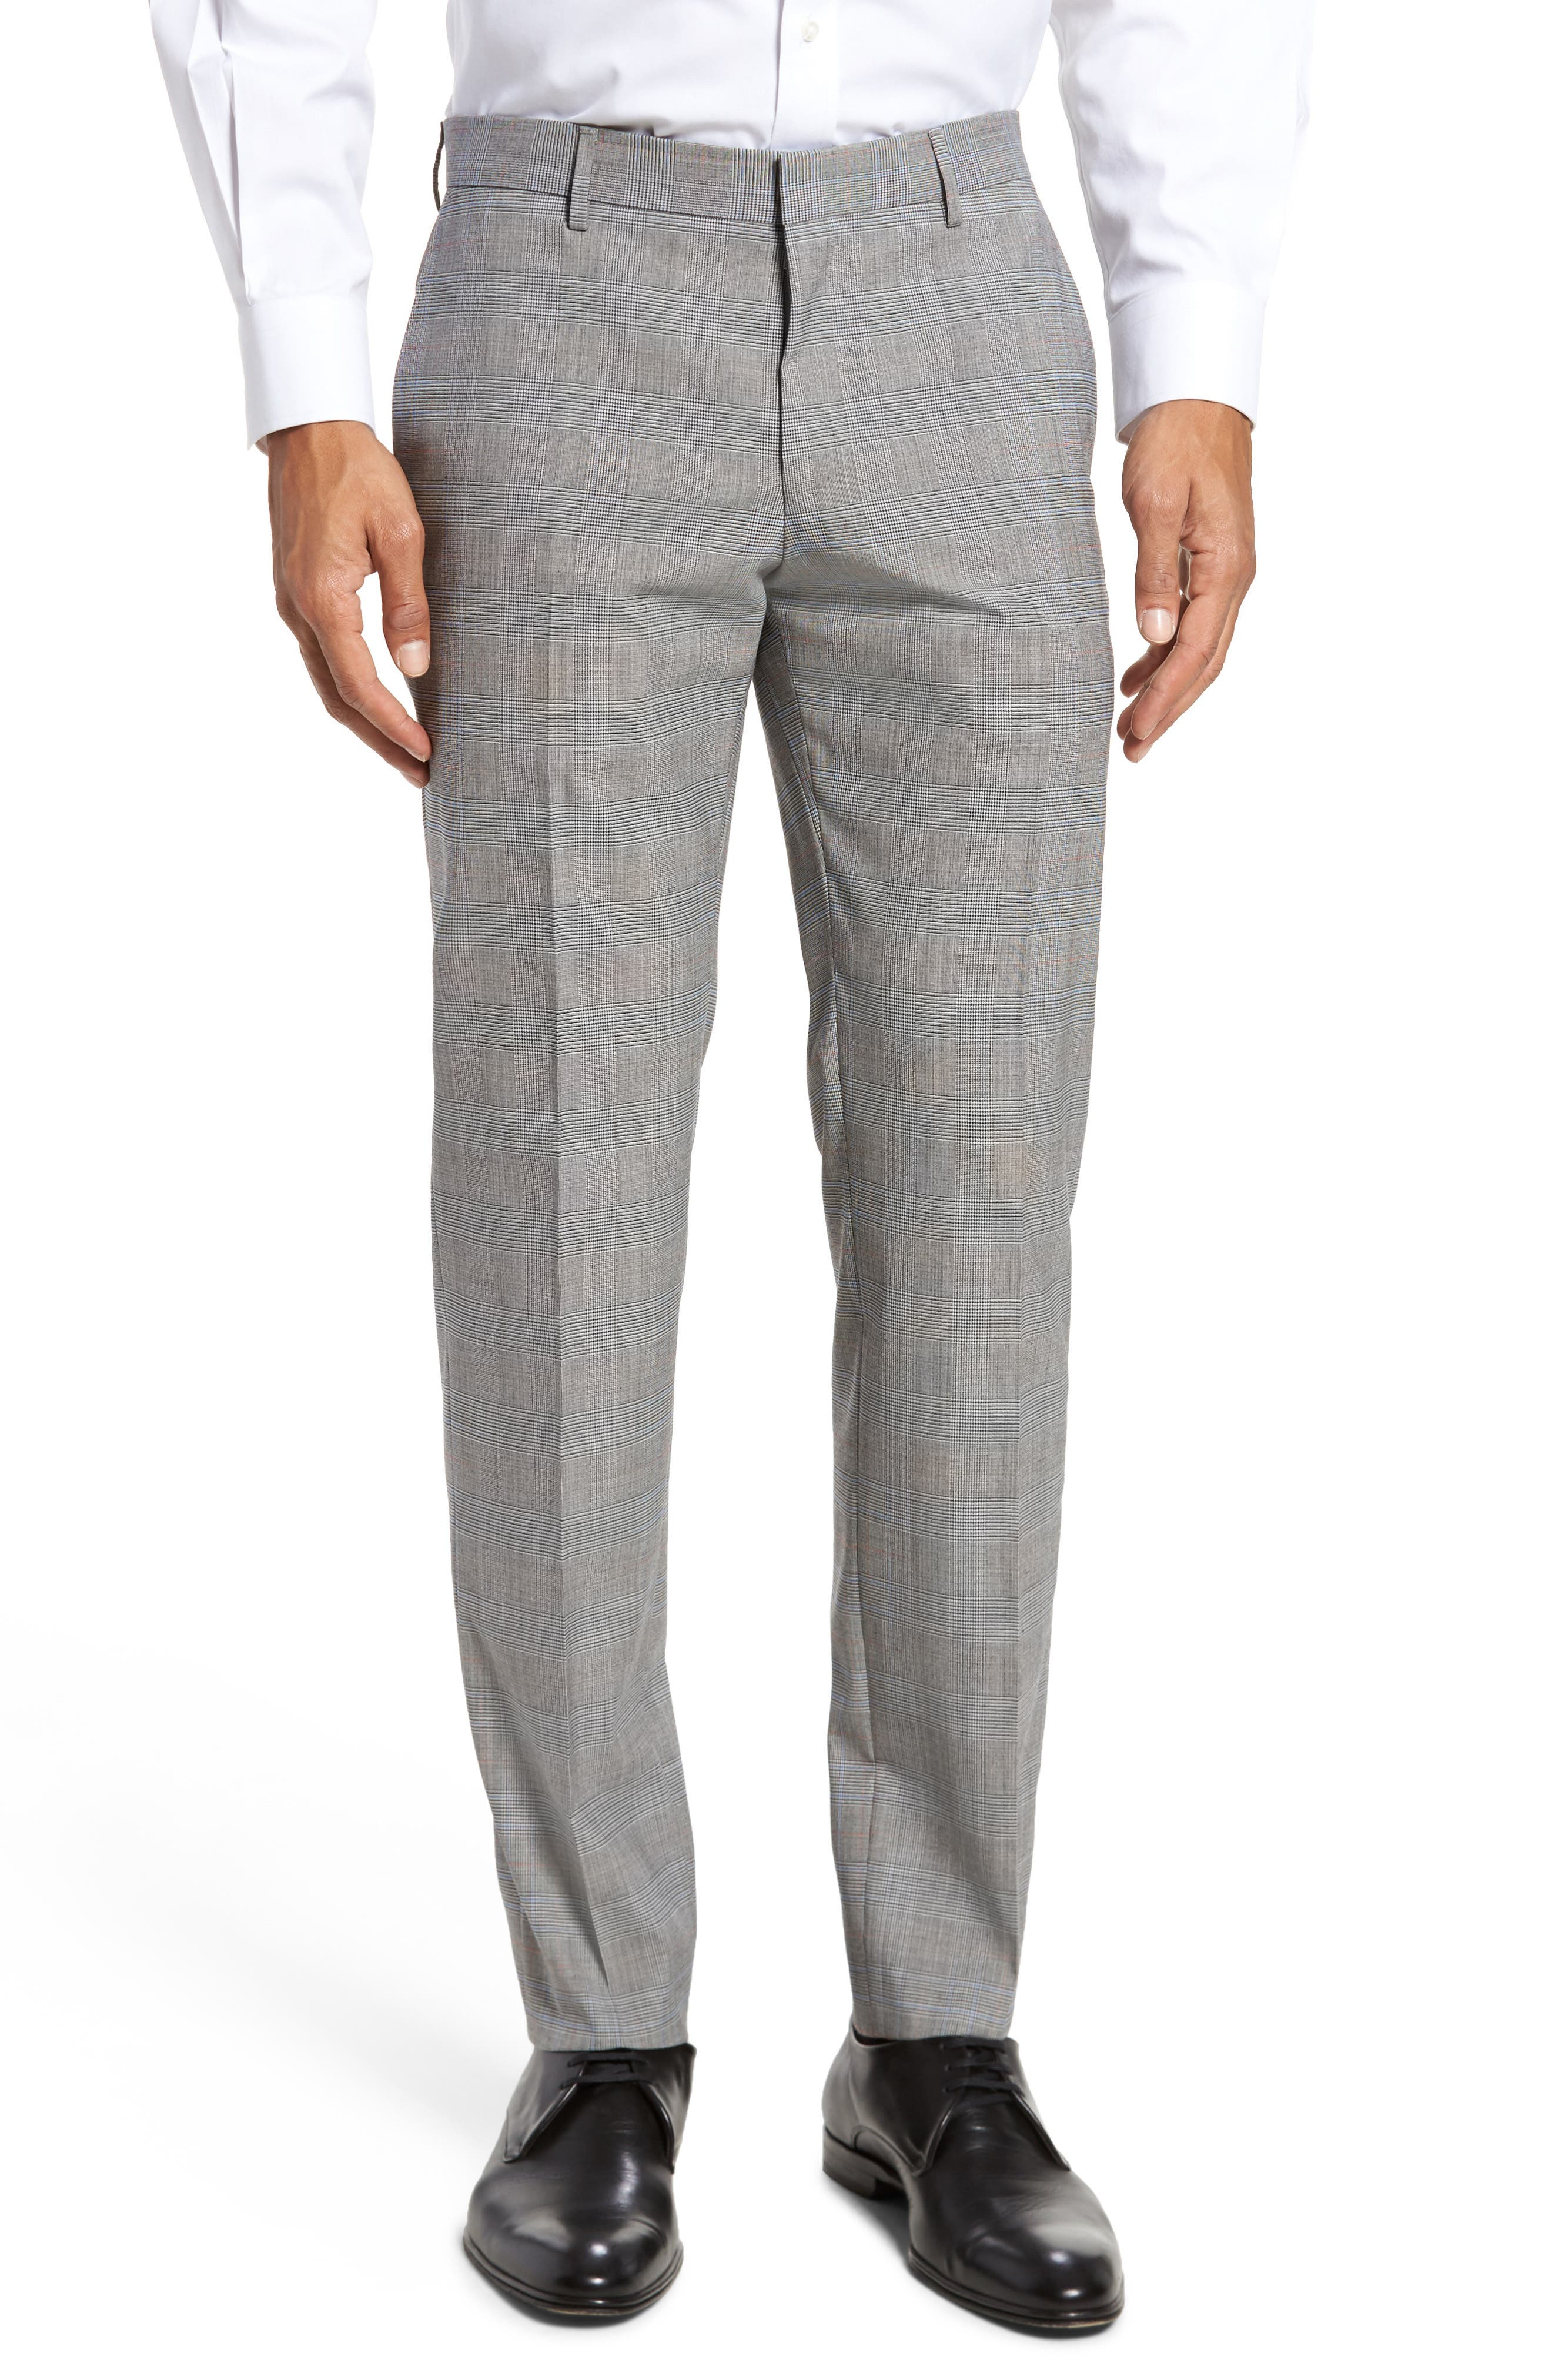 Benso Flat Front Plaid Wool Blend Trousers,                         Main,                         color, Open Grey